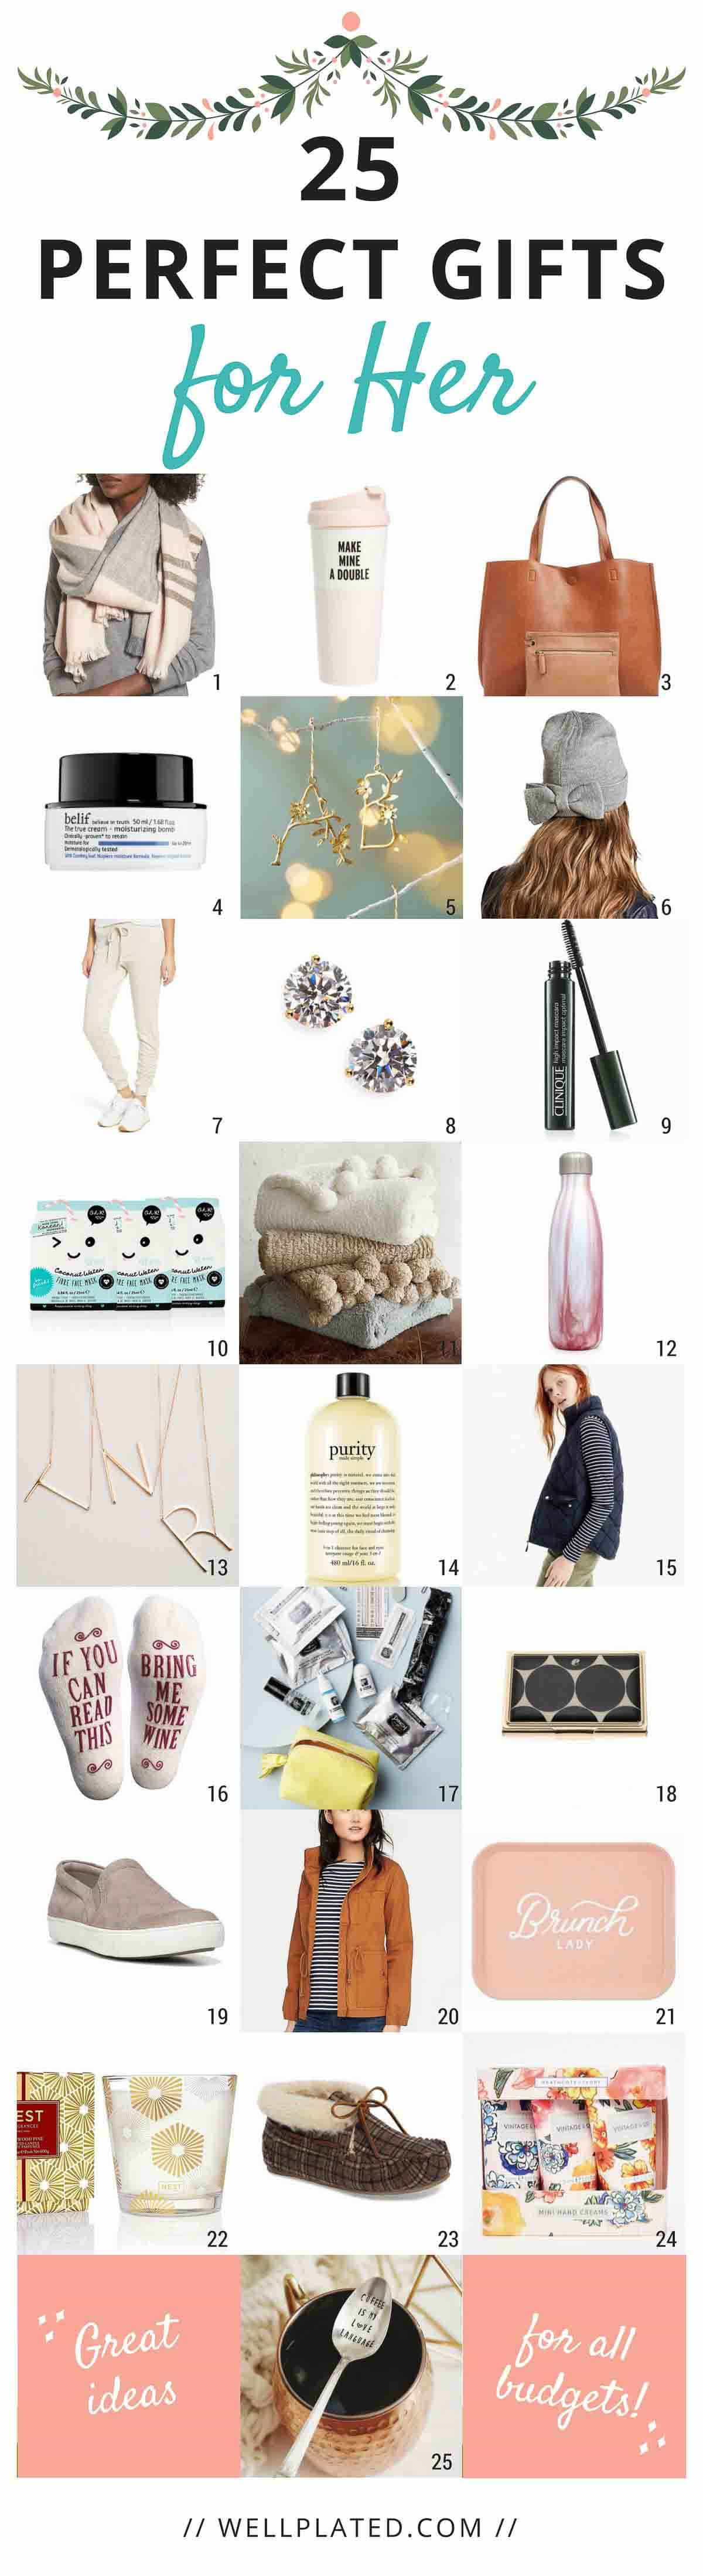 Best ideas about Fun Gift Ideas For Her . Save or Pin 25 Perfect Gifts for Her Now.